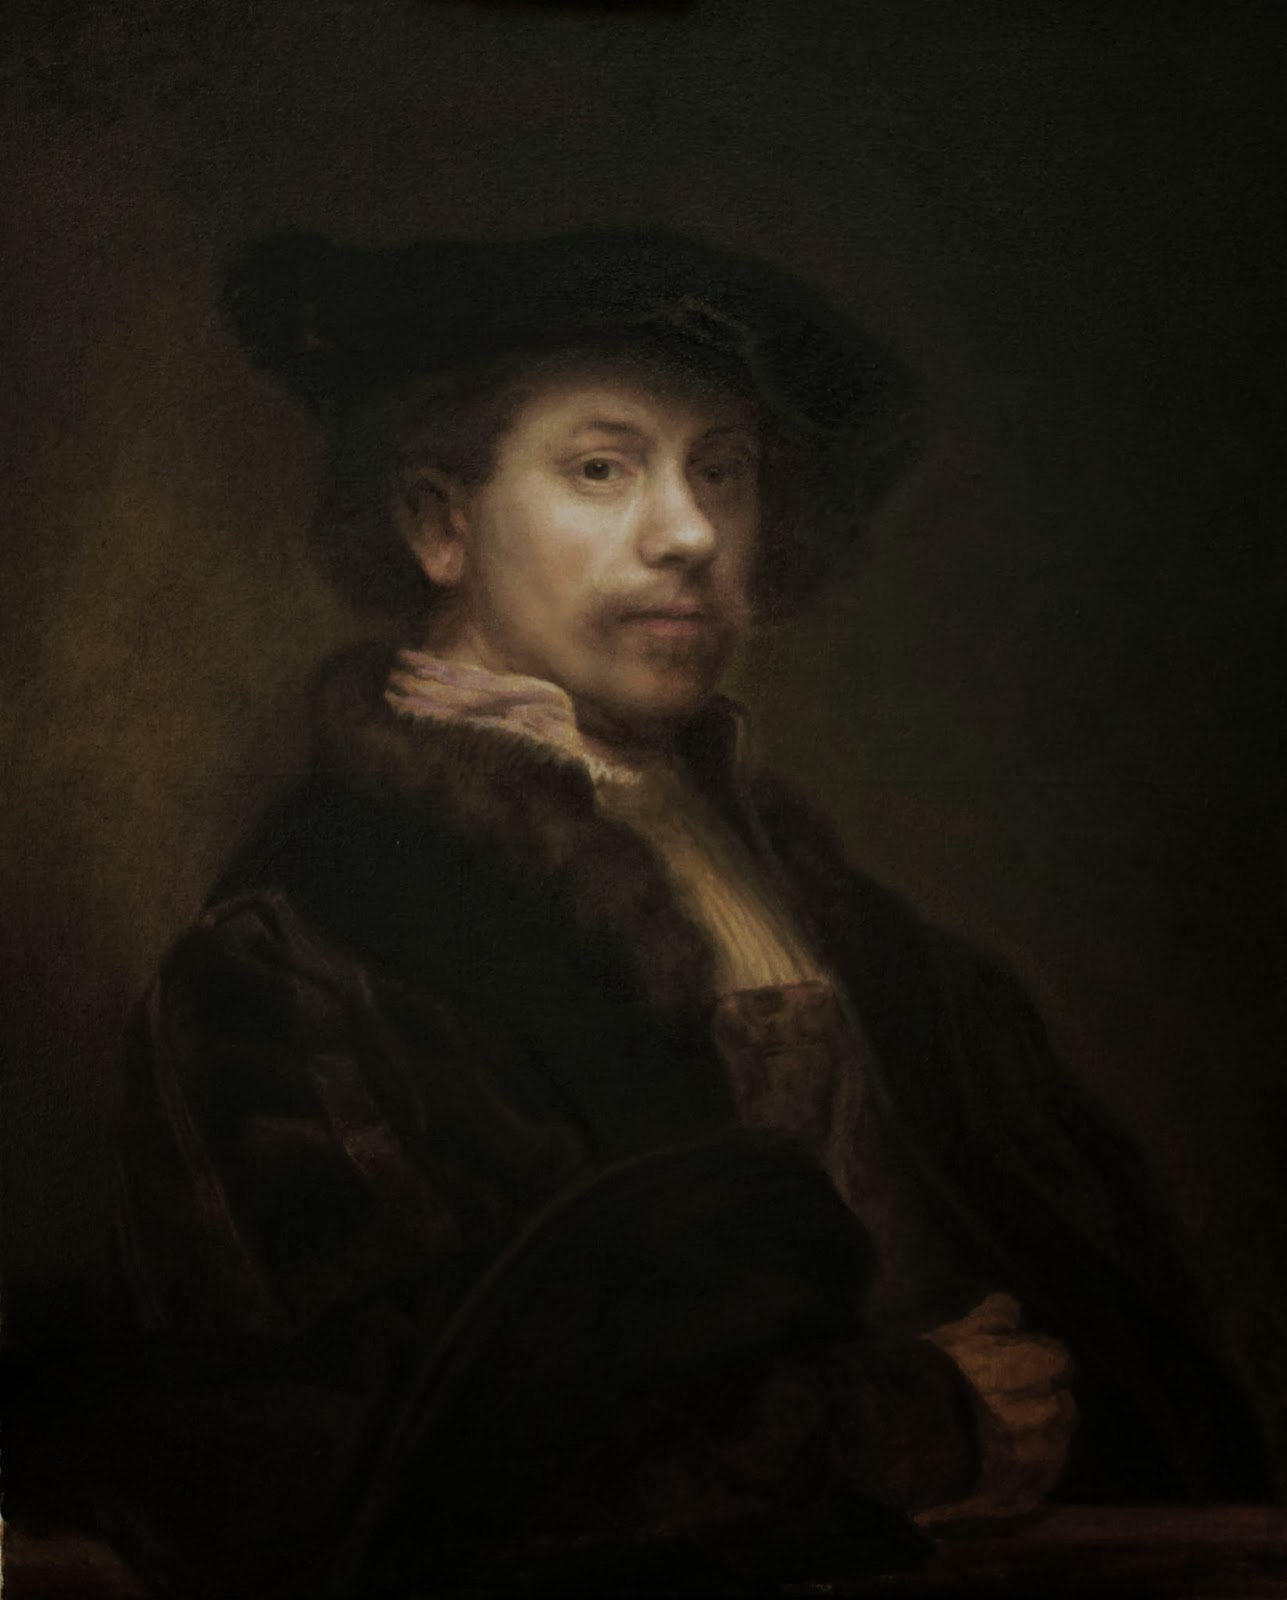 I am copying Rembrandt Self-Portraits 24X30 | My paintings